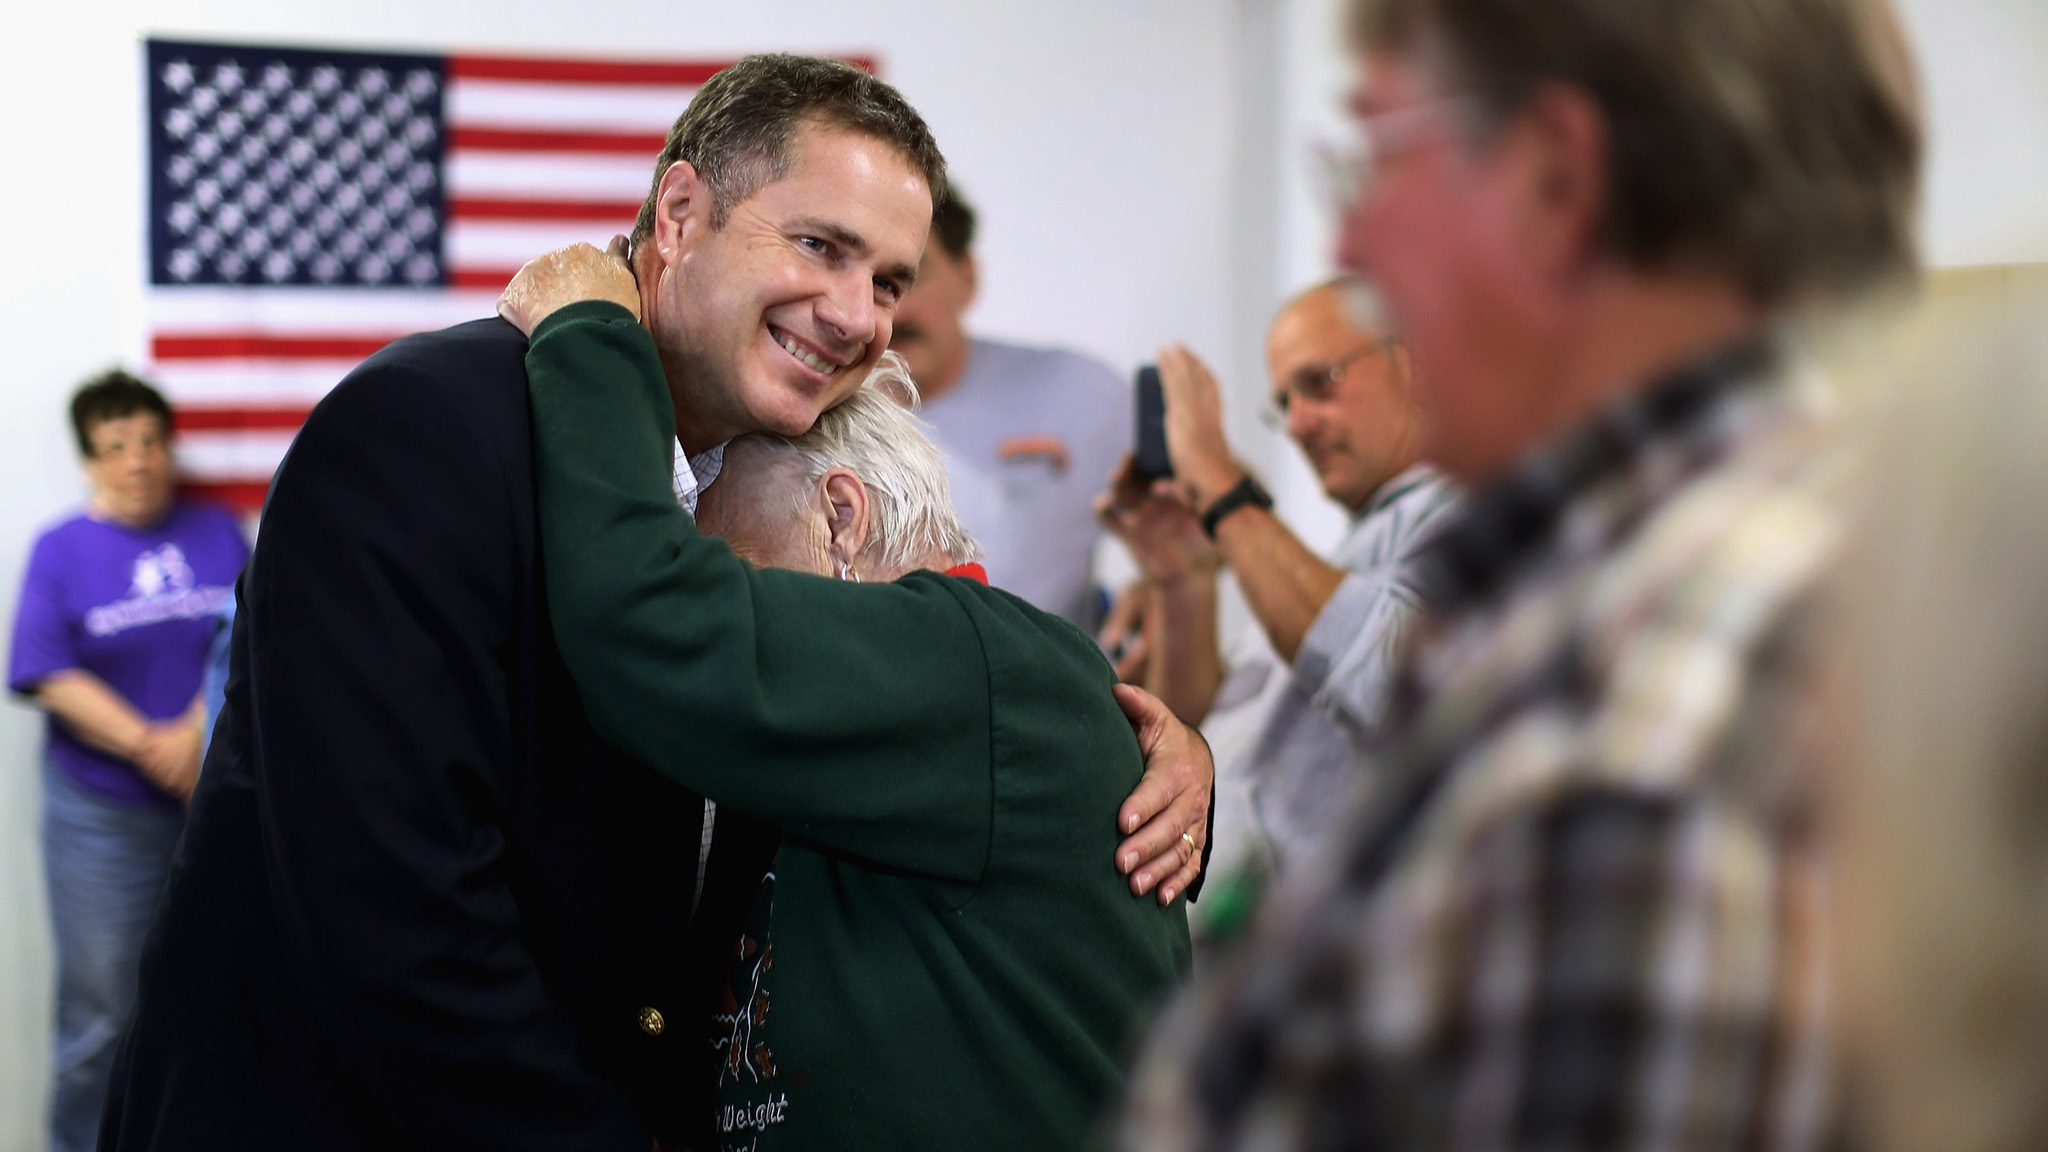 Iowa Senate Candidate Bruce Braley Campaigns Ahead Of Midterm Elections